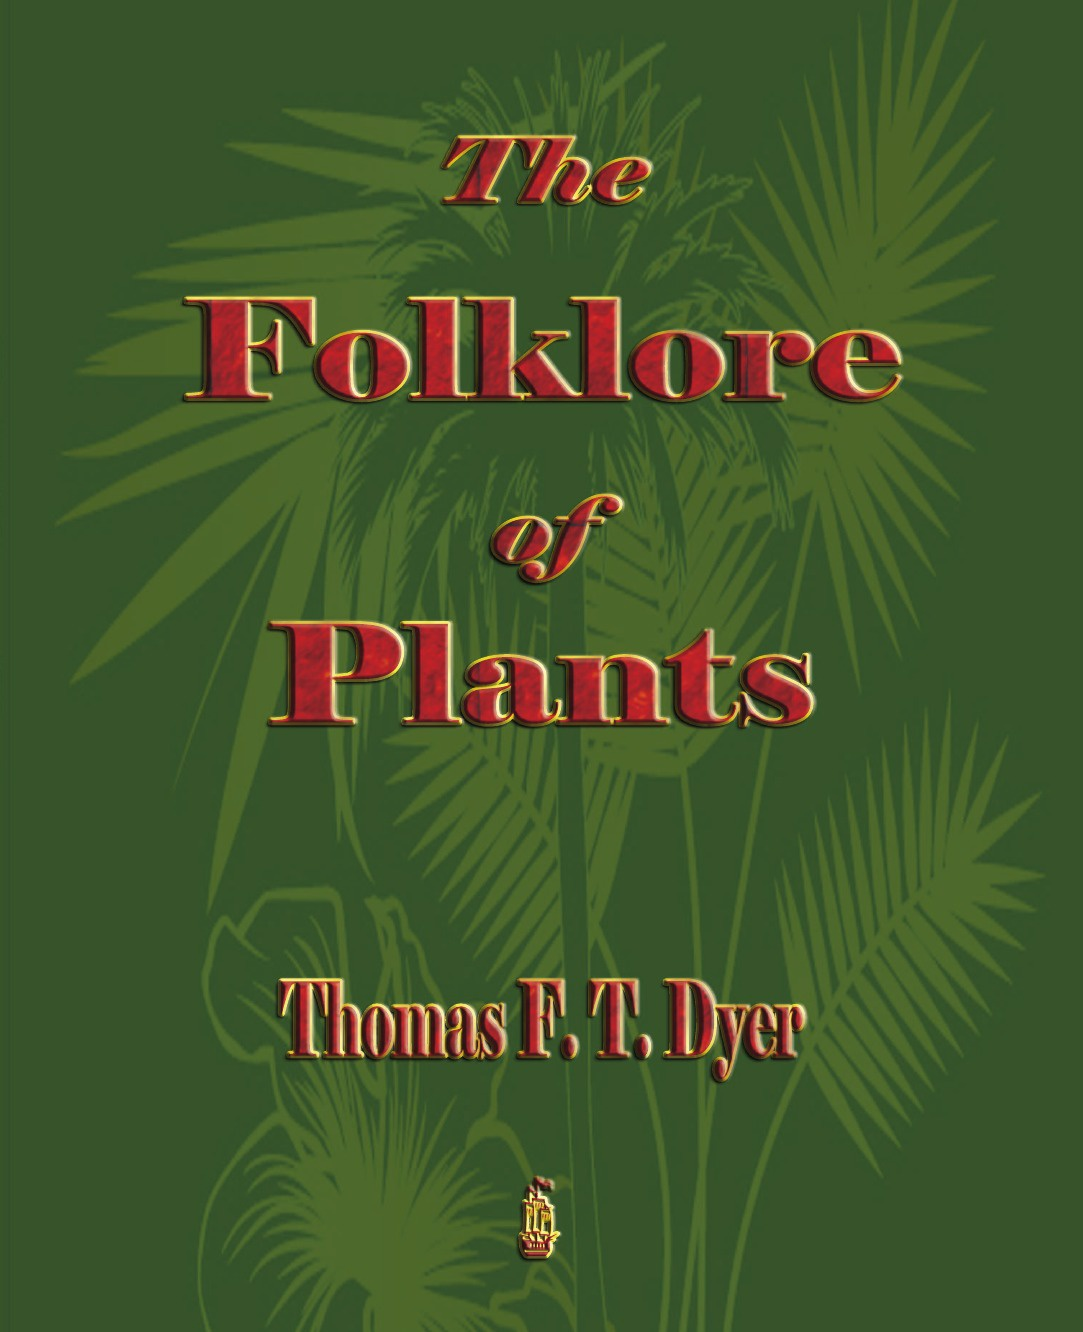 Thomas Firminger Thiselton-Dyer The Folk-Lore of Plants william plaxton annual plant reviews phosphorus metabolism in plants